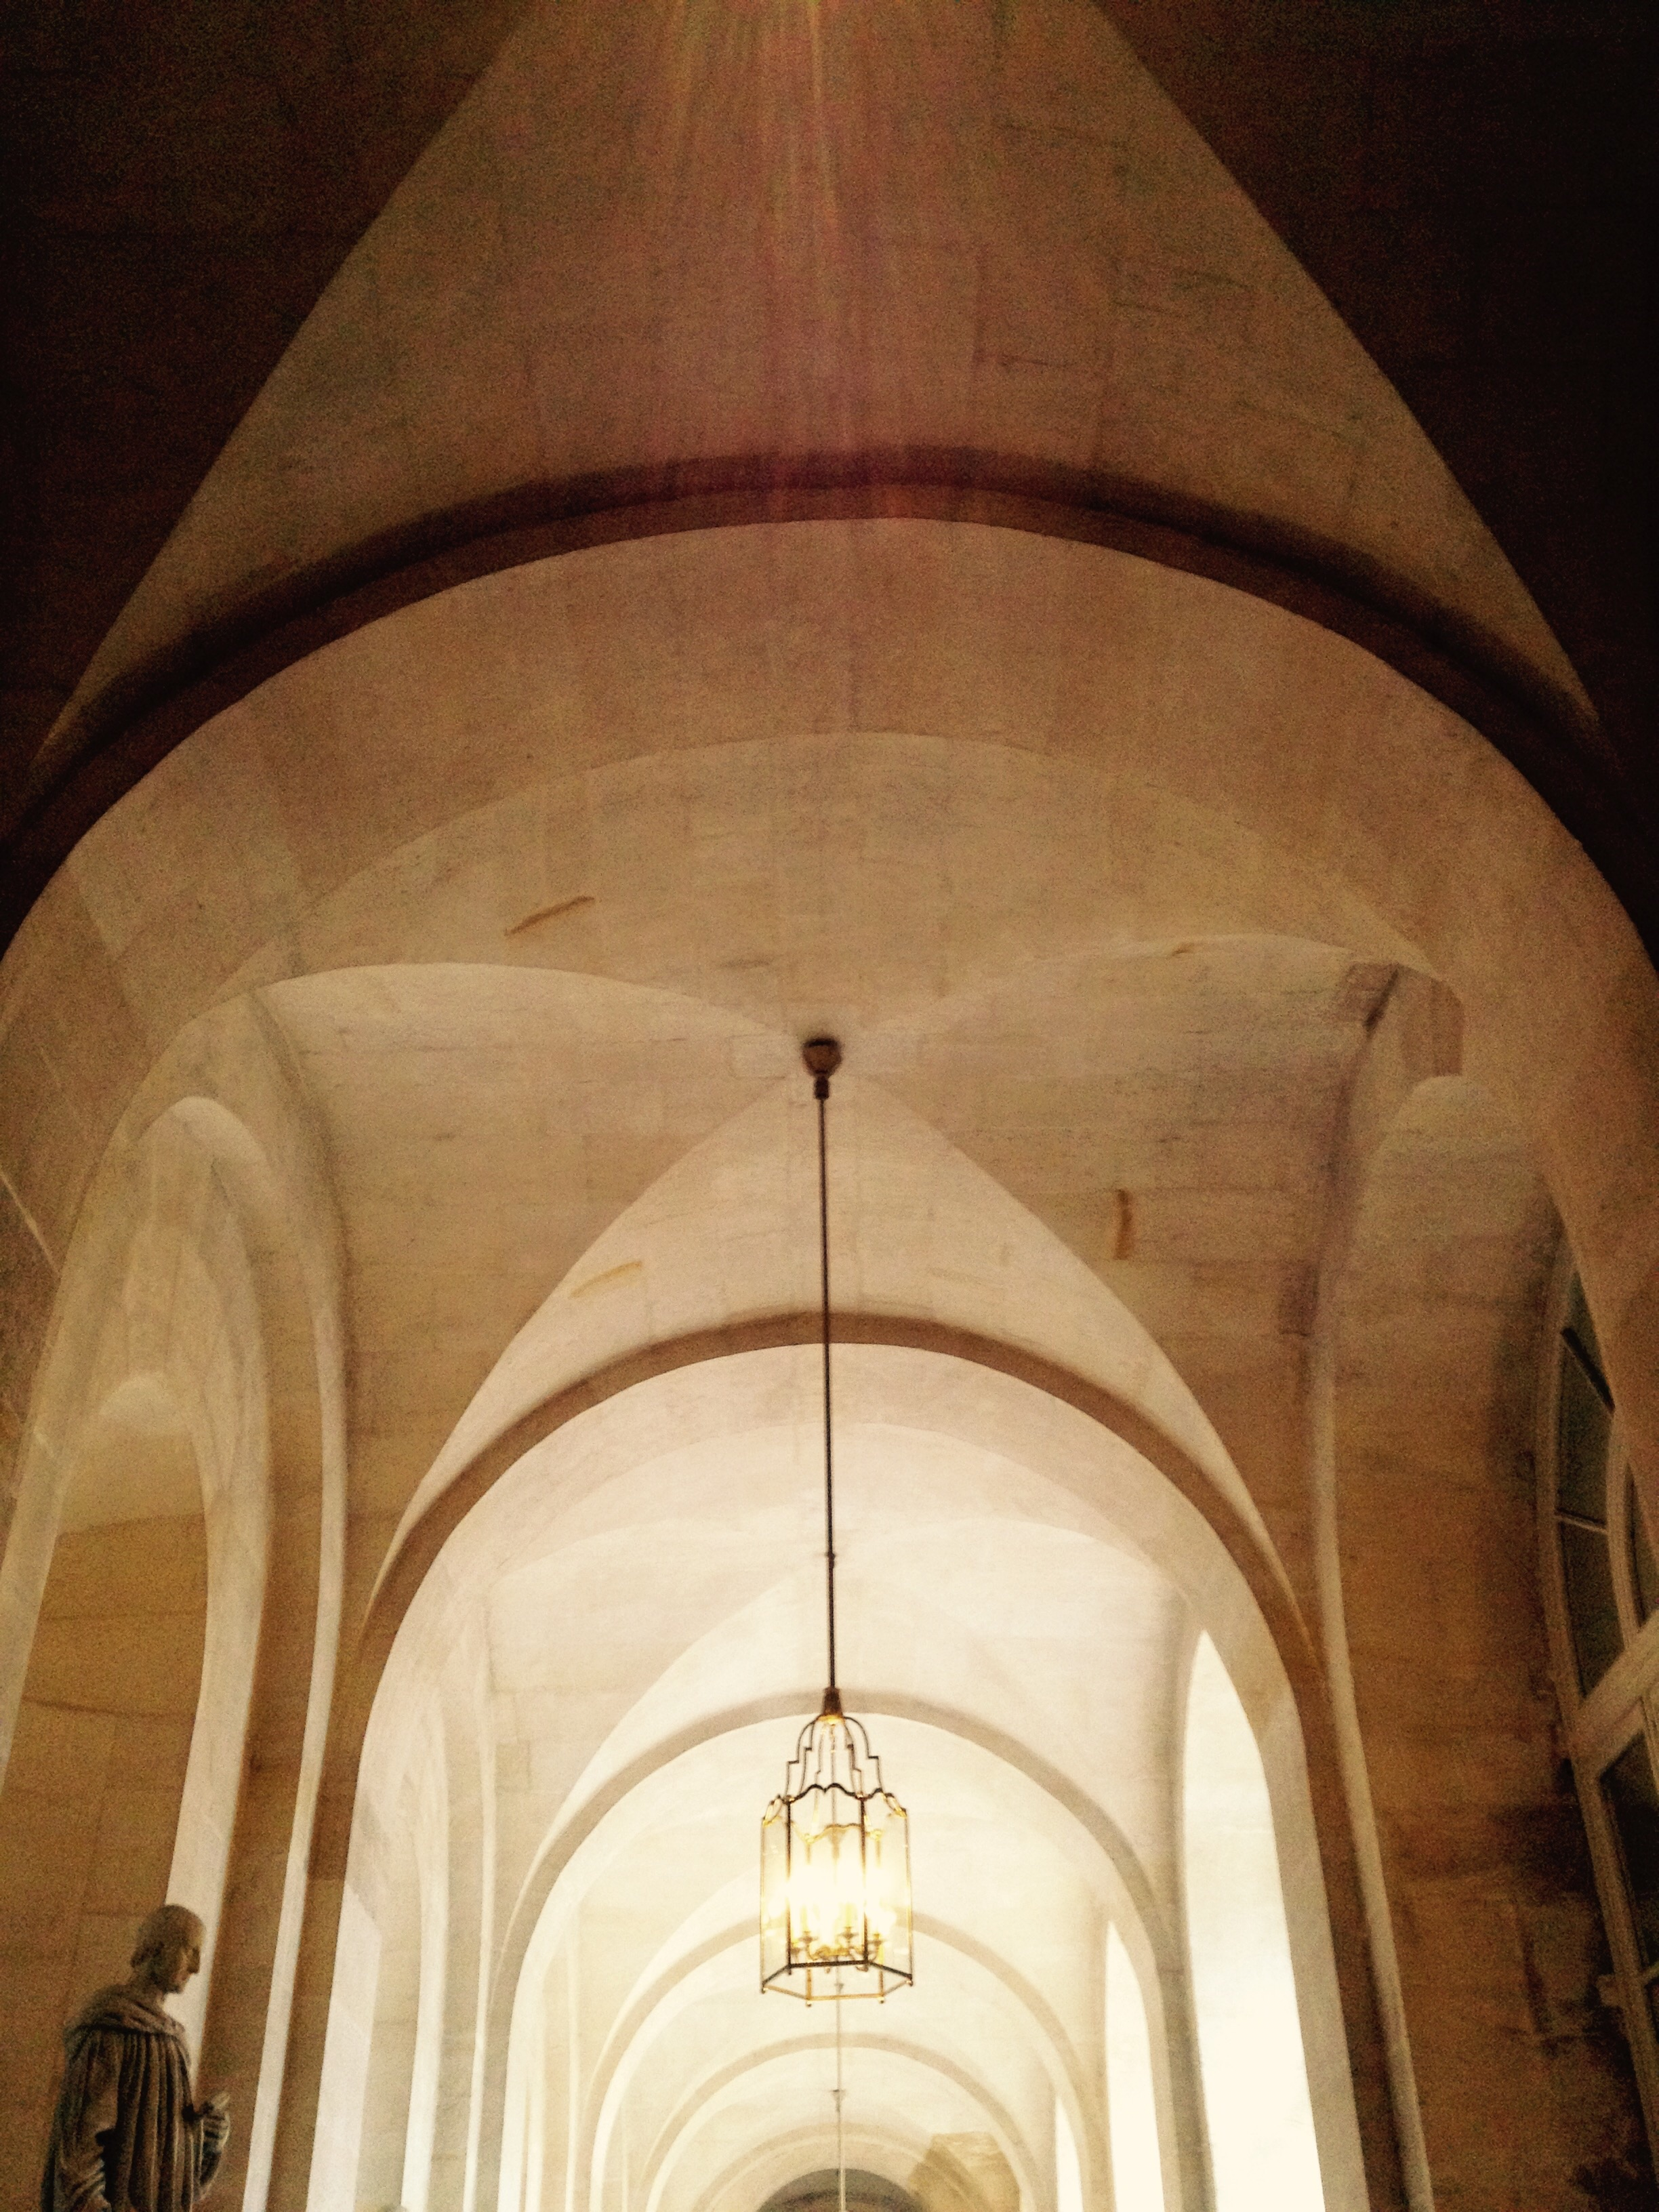 Vaulted ceiling of hallway in the palace